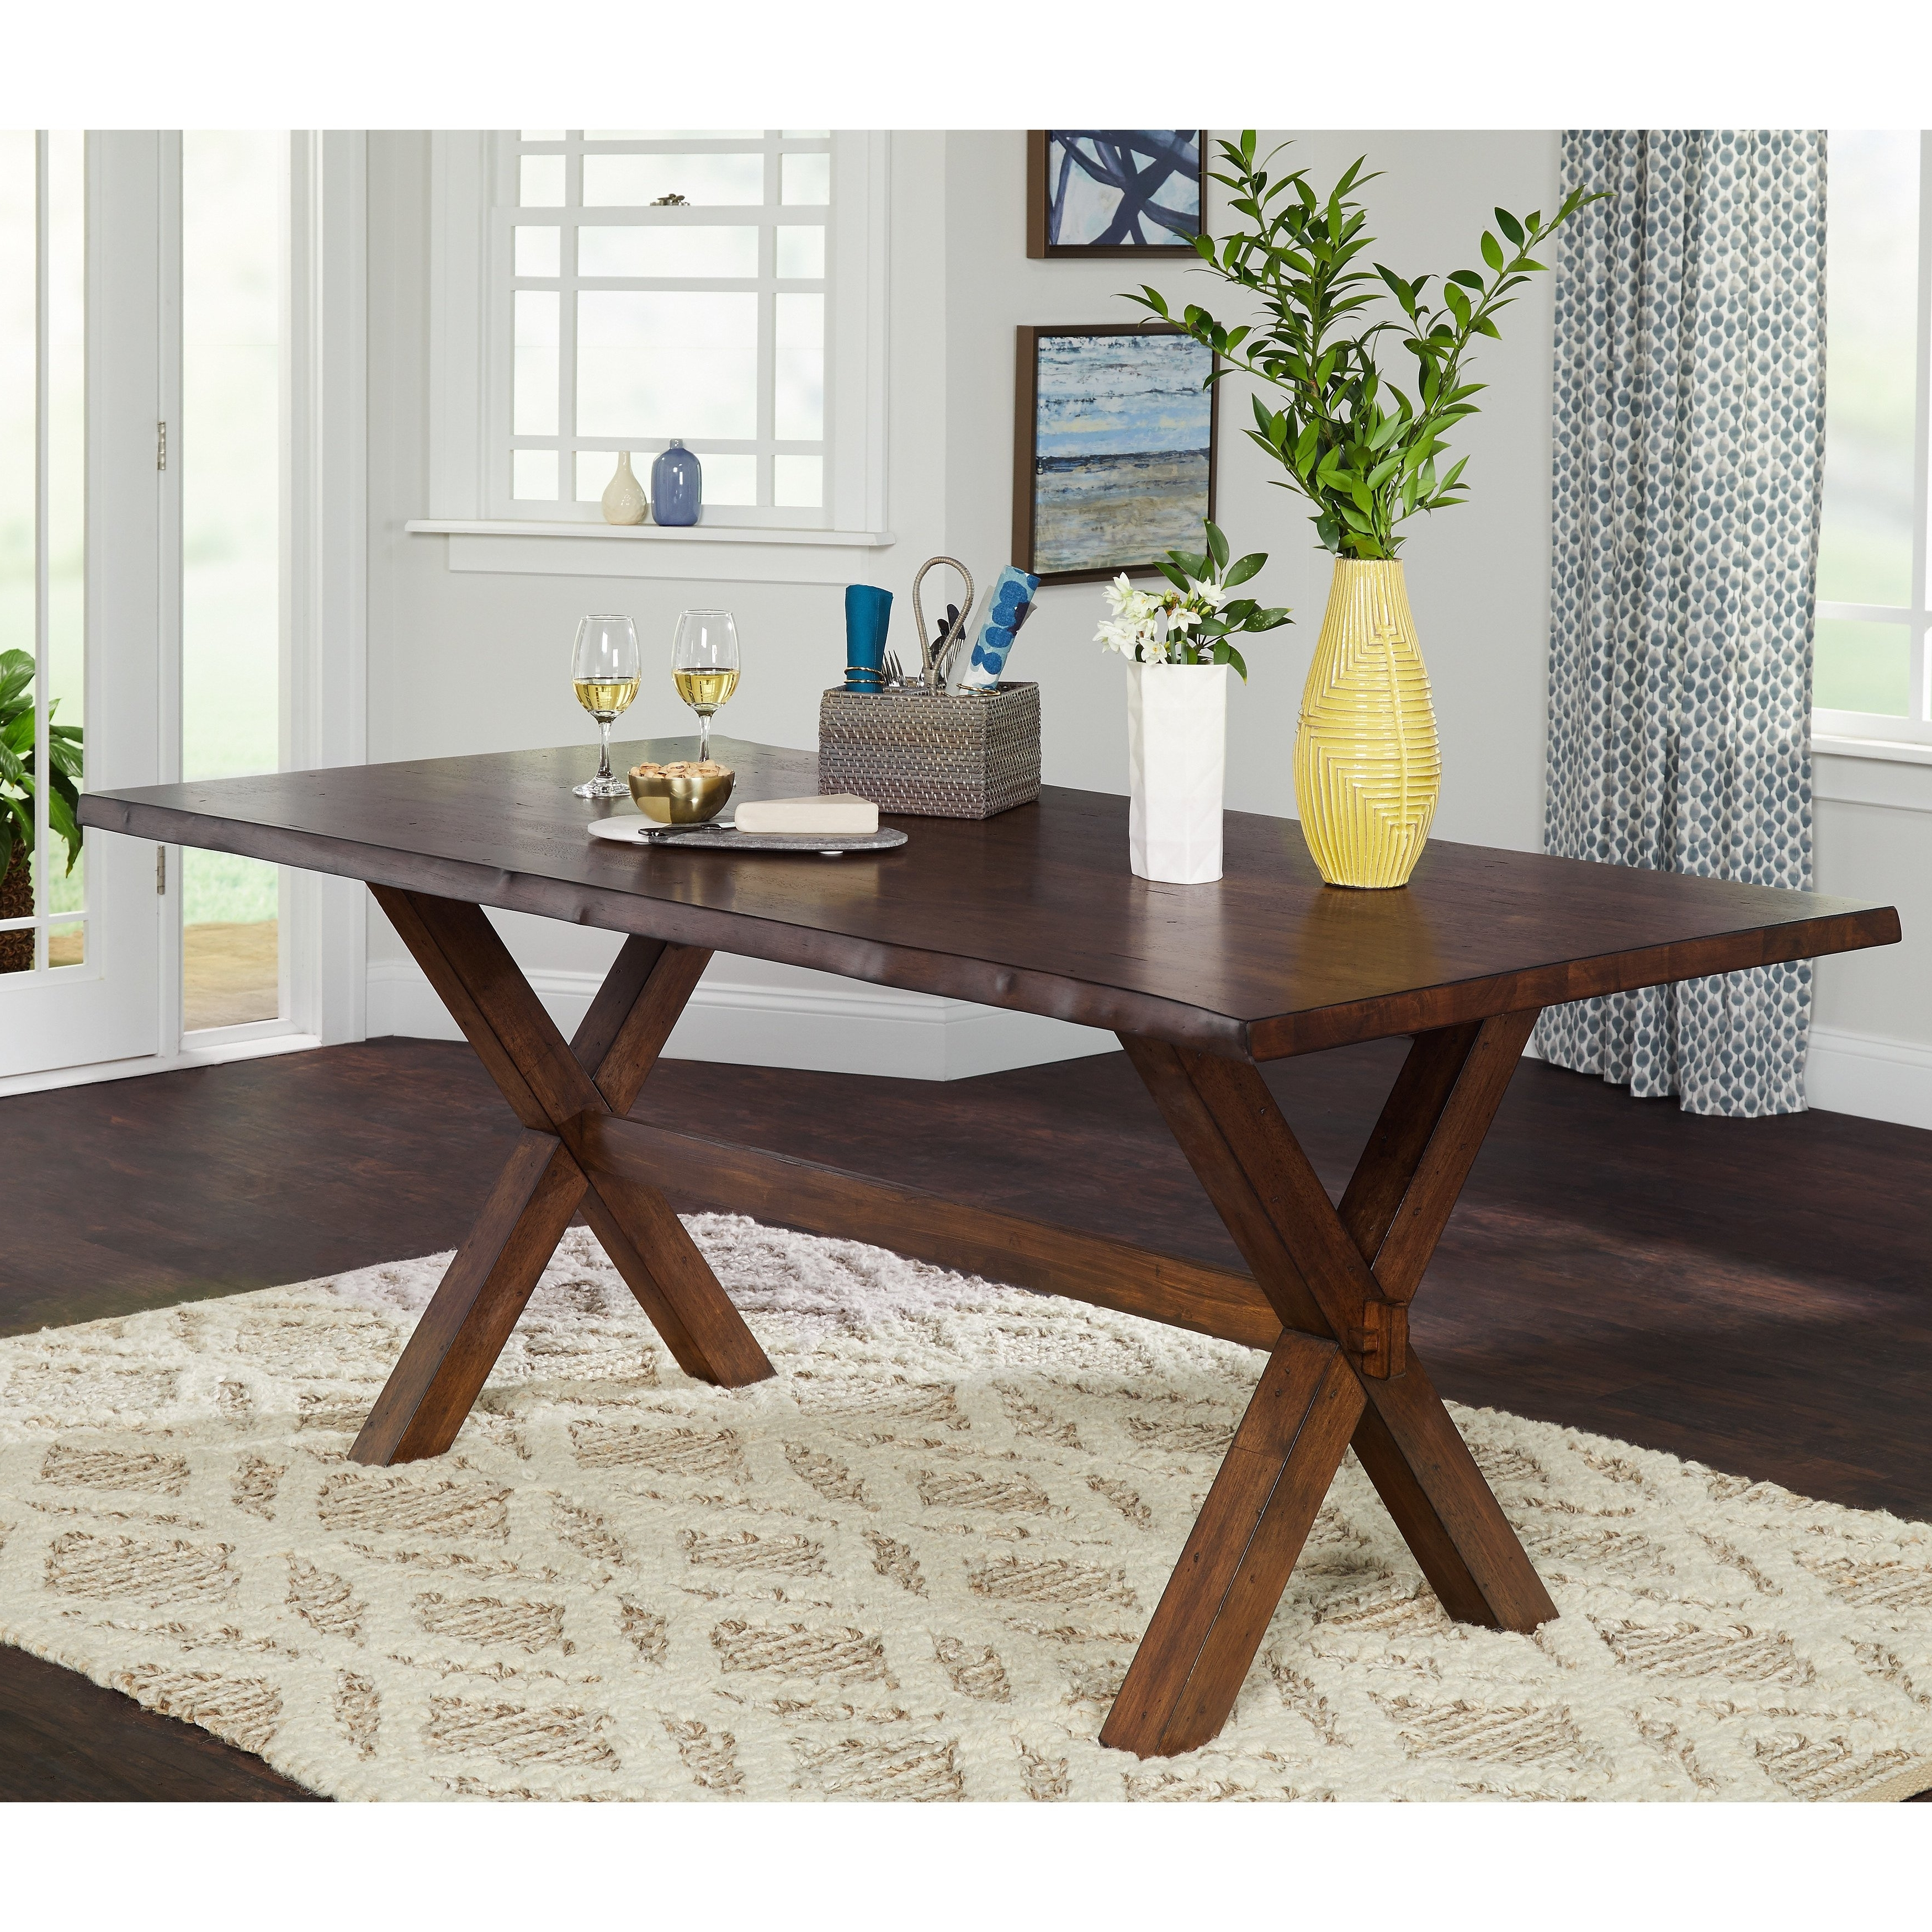 2017 Simple Living Mandeville Live Edge Solid Wood Dining Table – Walnut Within Wood Dining Tables (View 11 of 25)